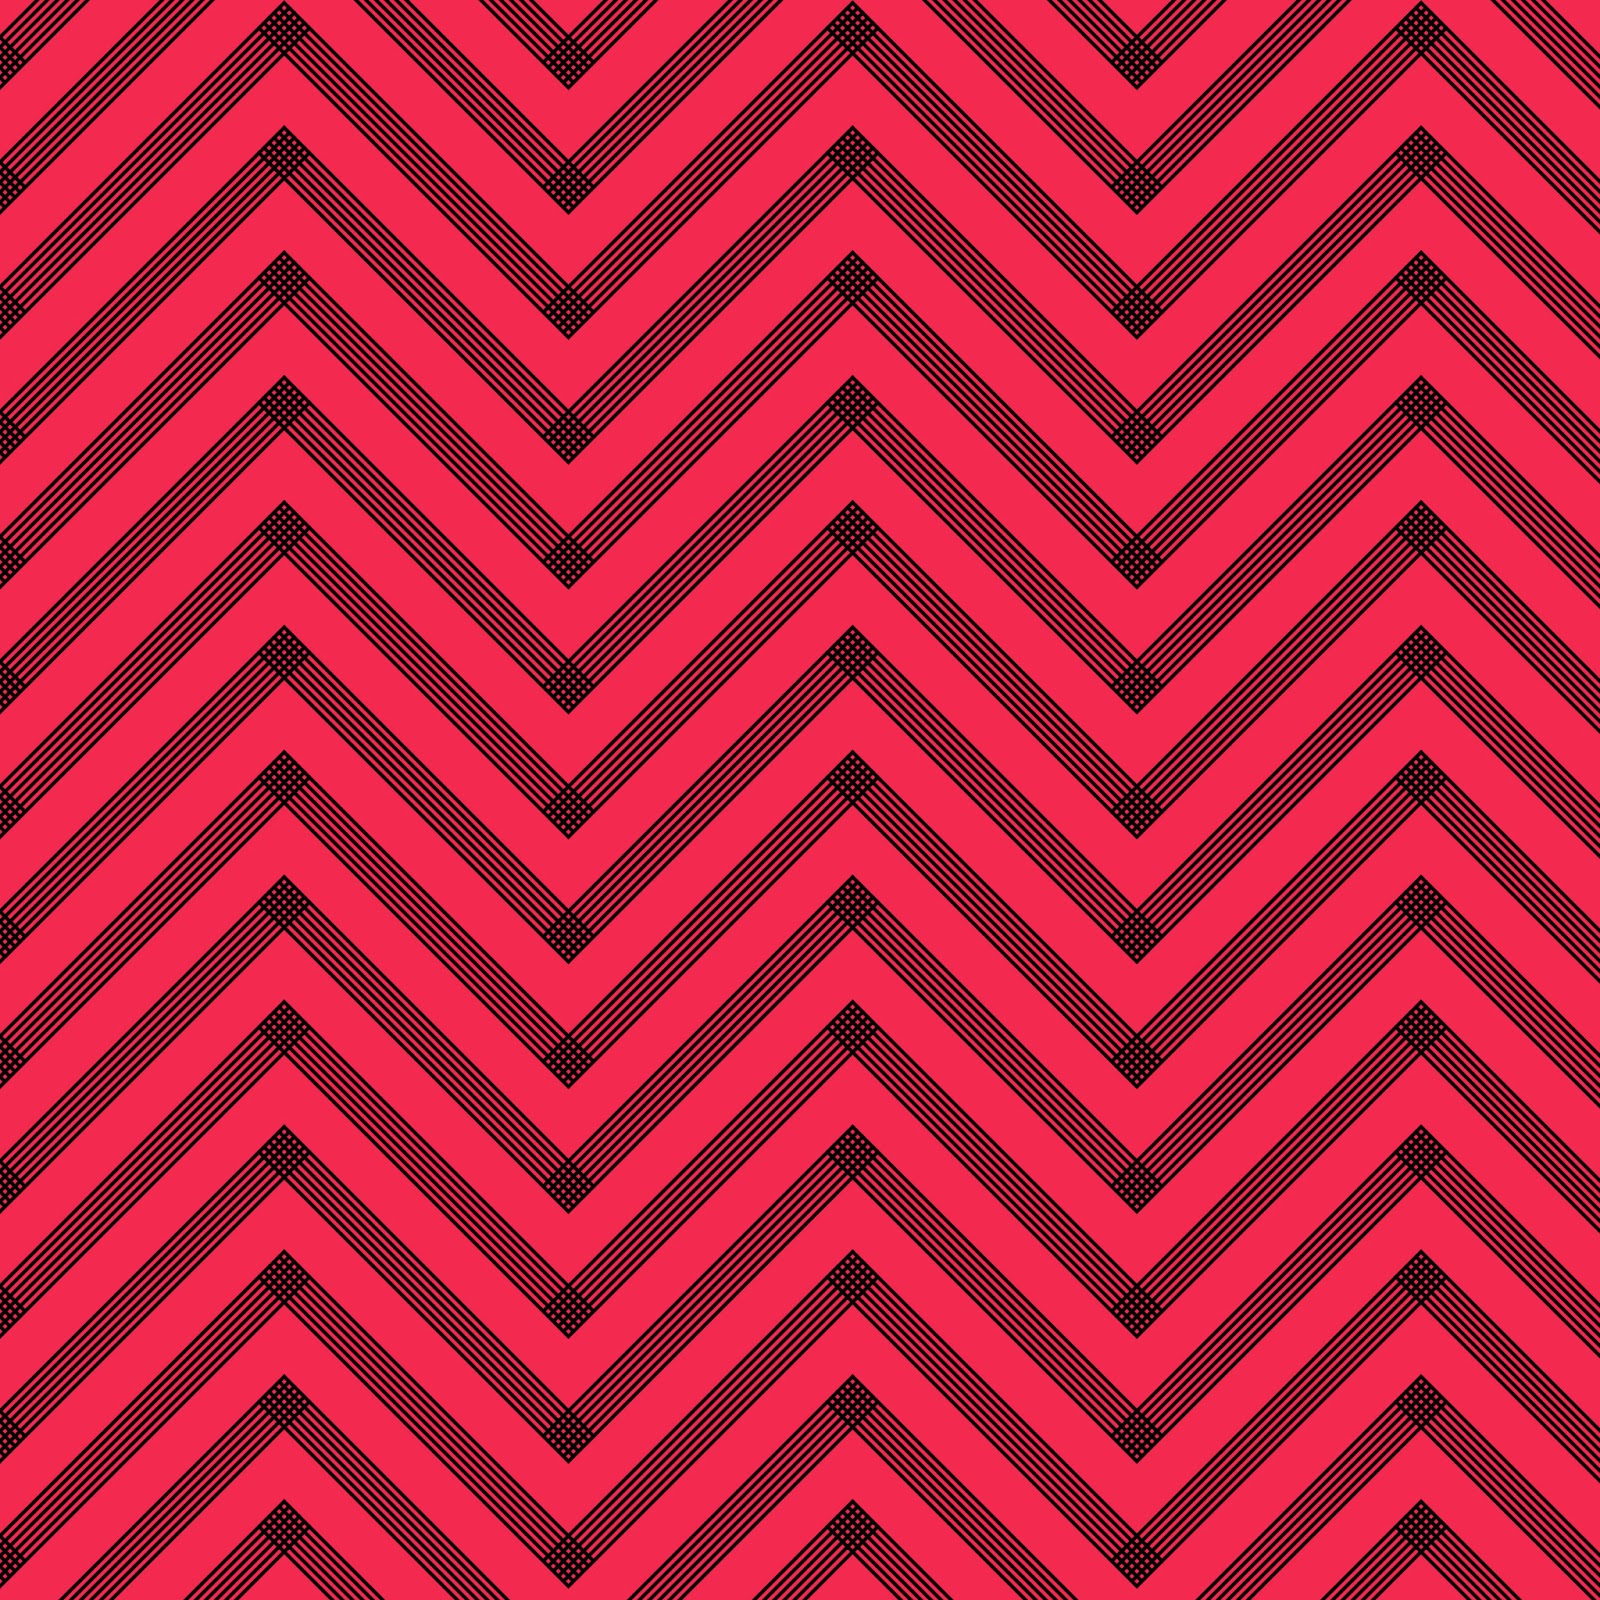 Doodlecraft: Free Sketchy Chevron Background FREEBIES!